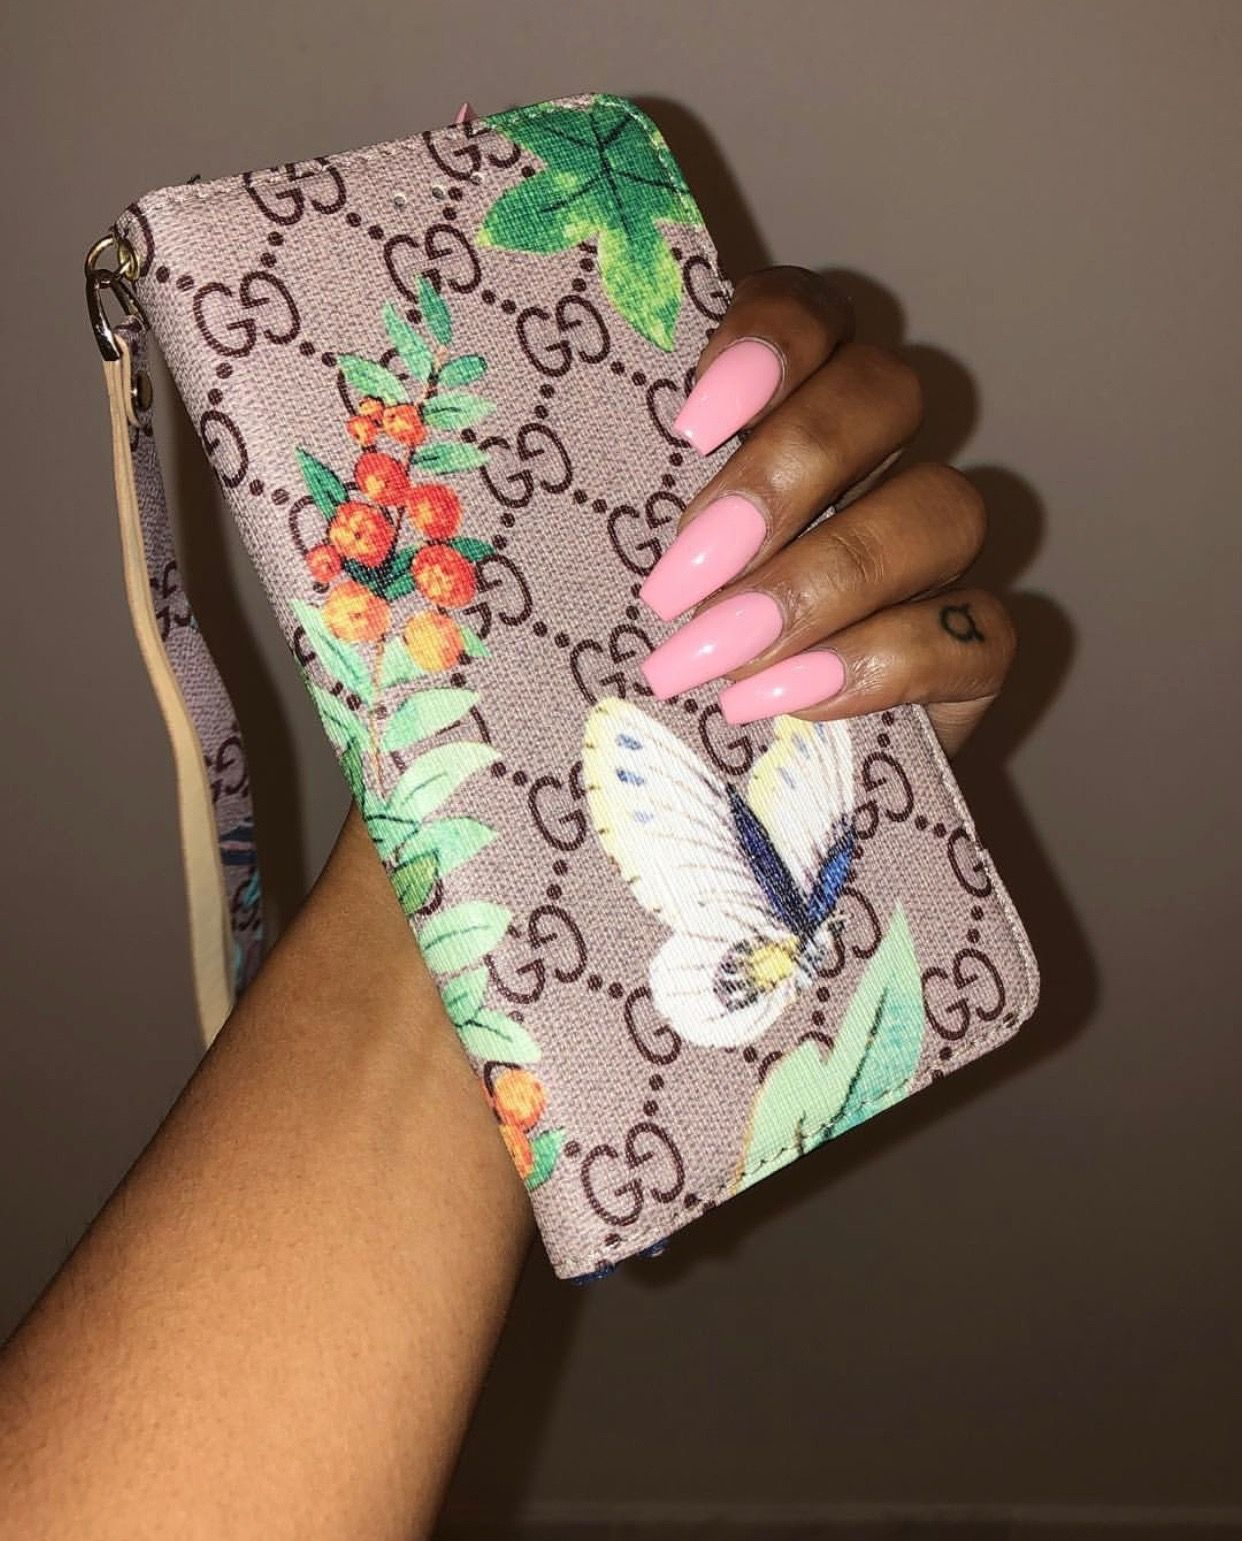 Follow Tropic M For More Shiny Nails Designs Nail Designs Best Nail Art Designs